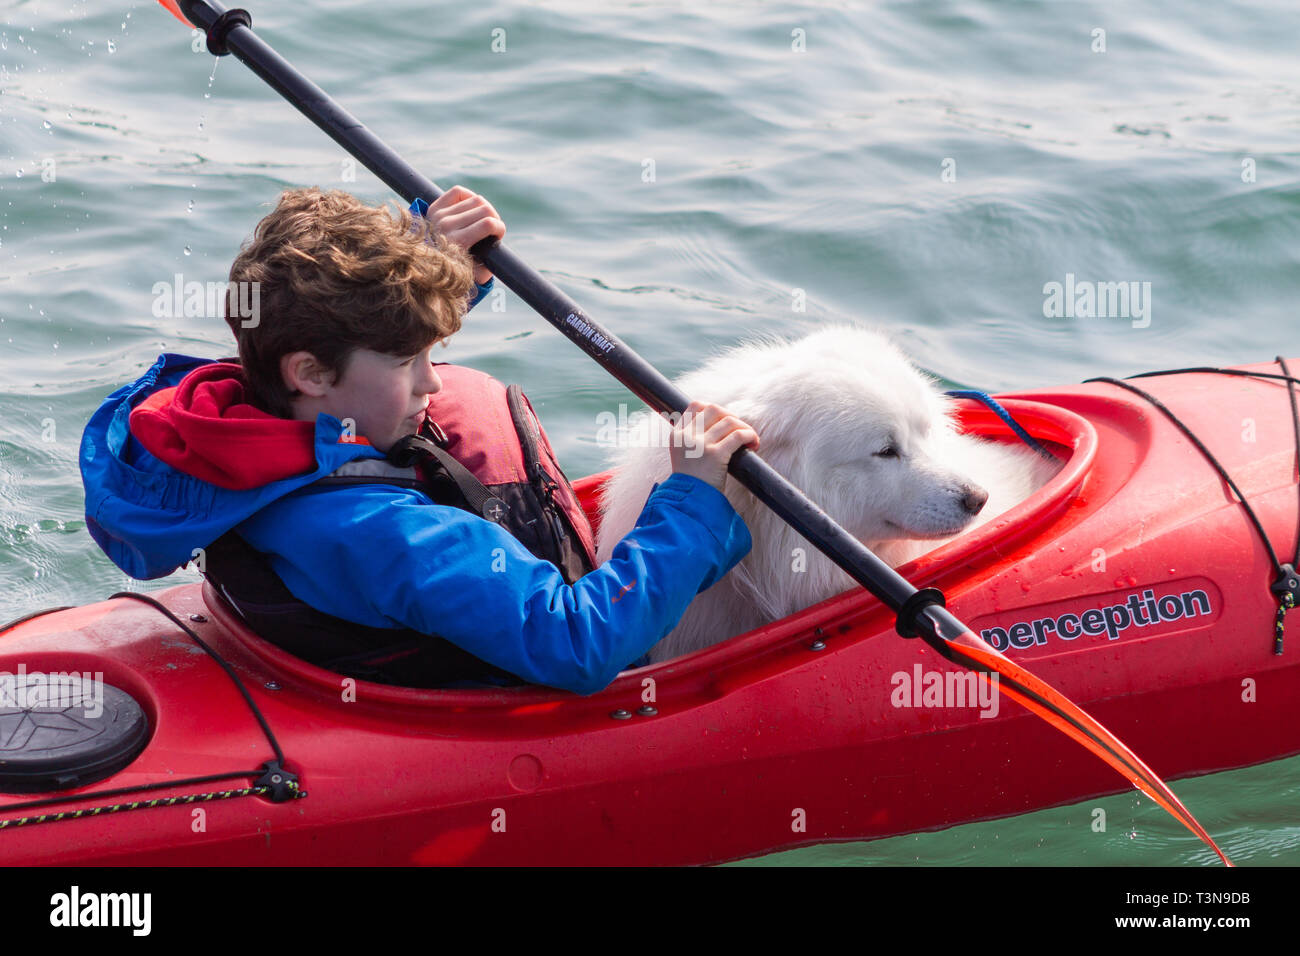 boy-and-his-pet-dog-kayaking-or-canoeing-T3N9DB.jpg